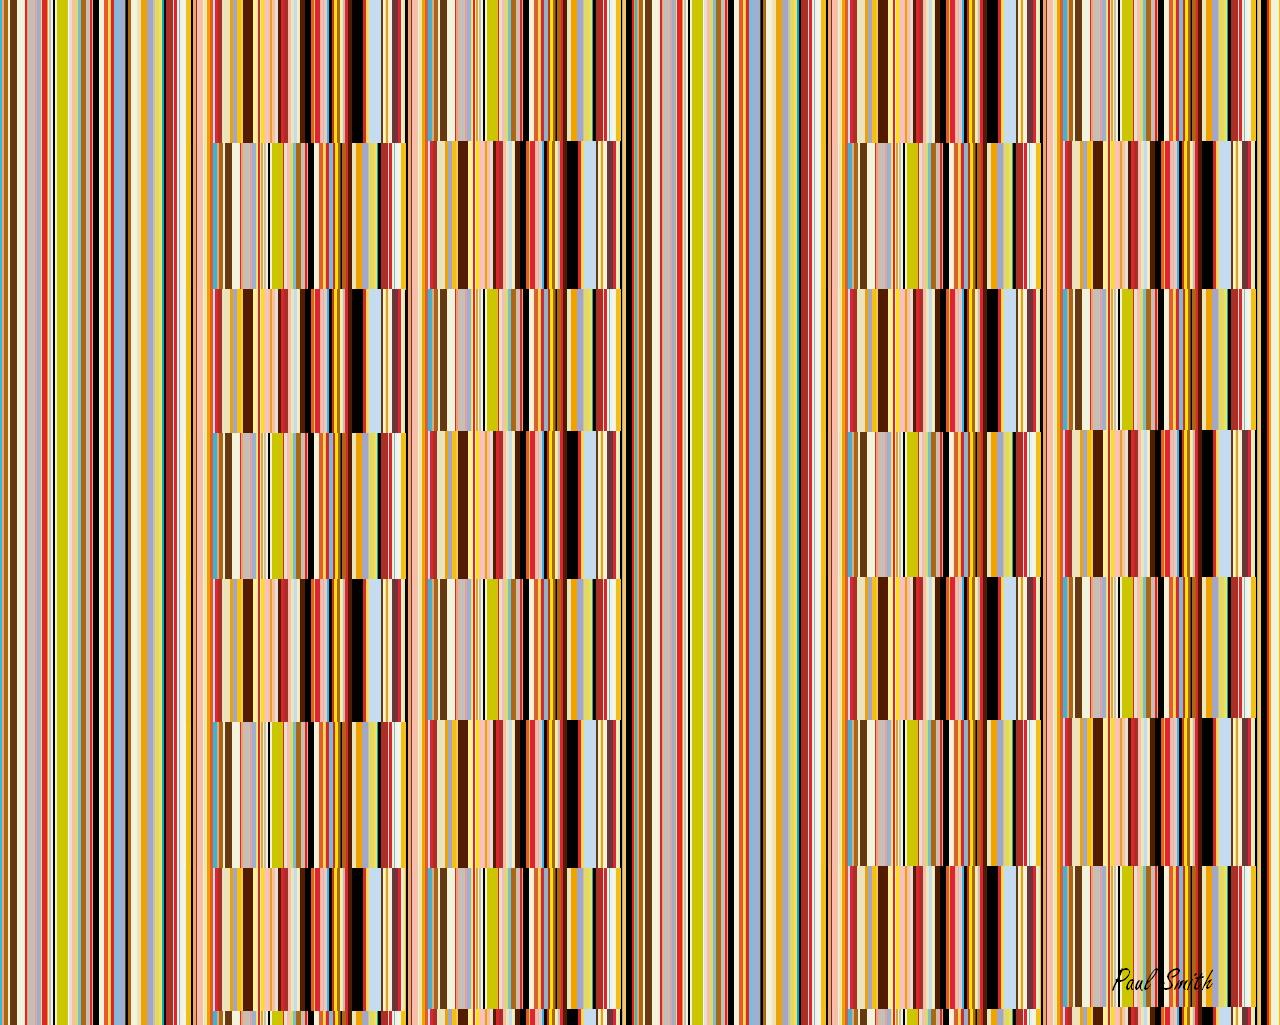 Paul Smith Wallpaper By Uberbaby On Deviantart